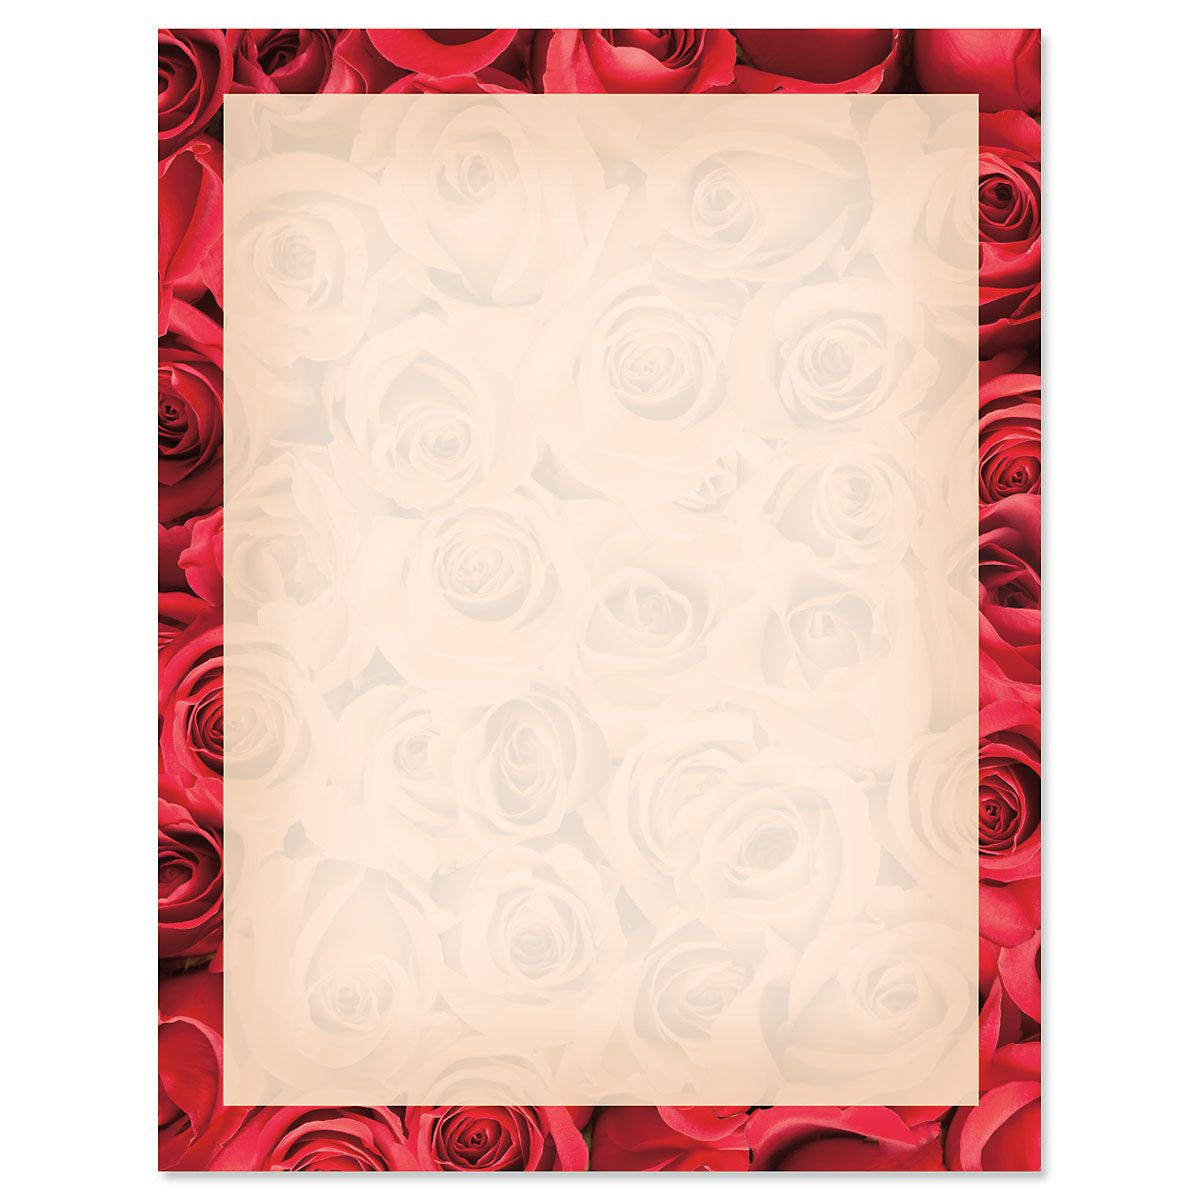 Bed of Roses on Cream Letter Papers